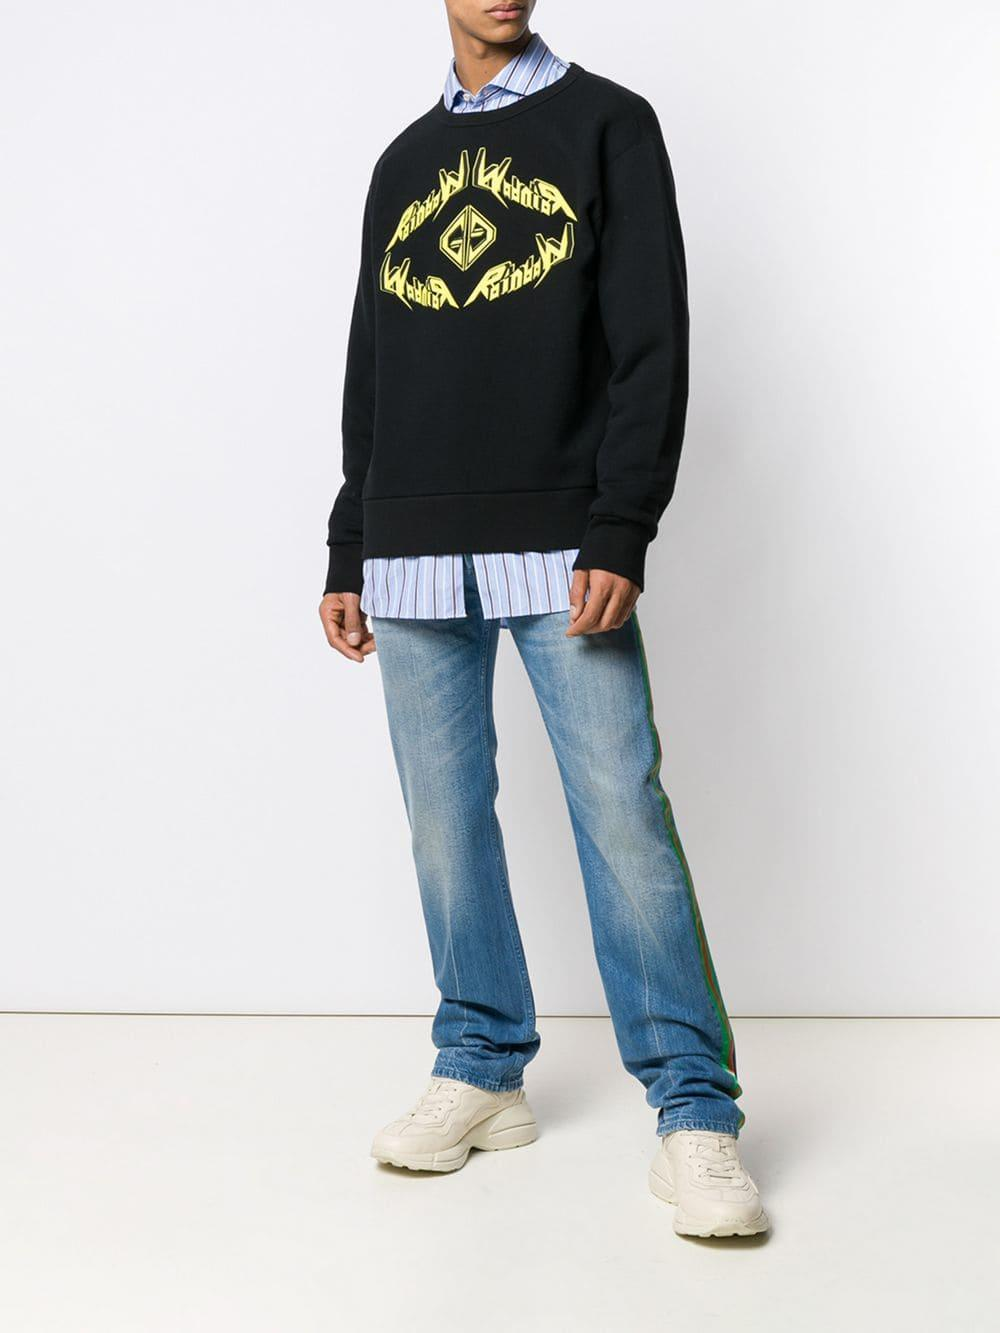 32f8b0f1bdd Lyst - Gucci Rainbow Graphic Logo Sweatshirt in Black for Men